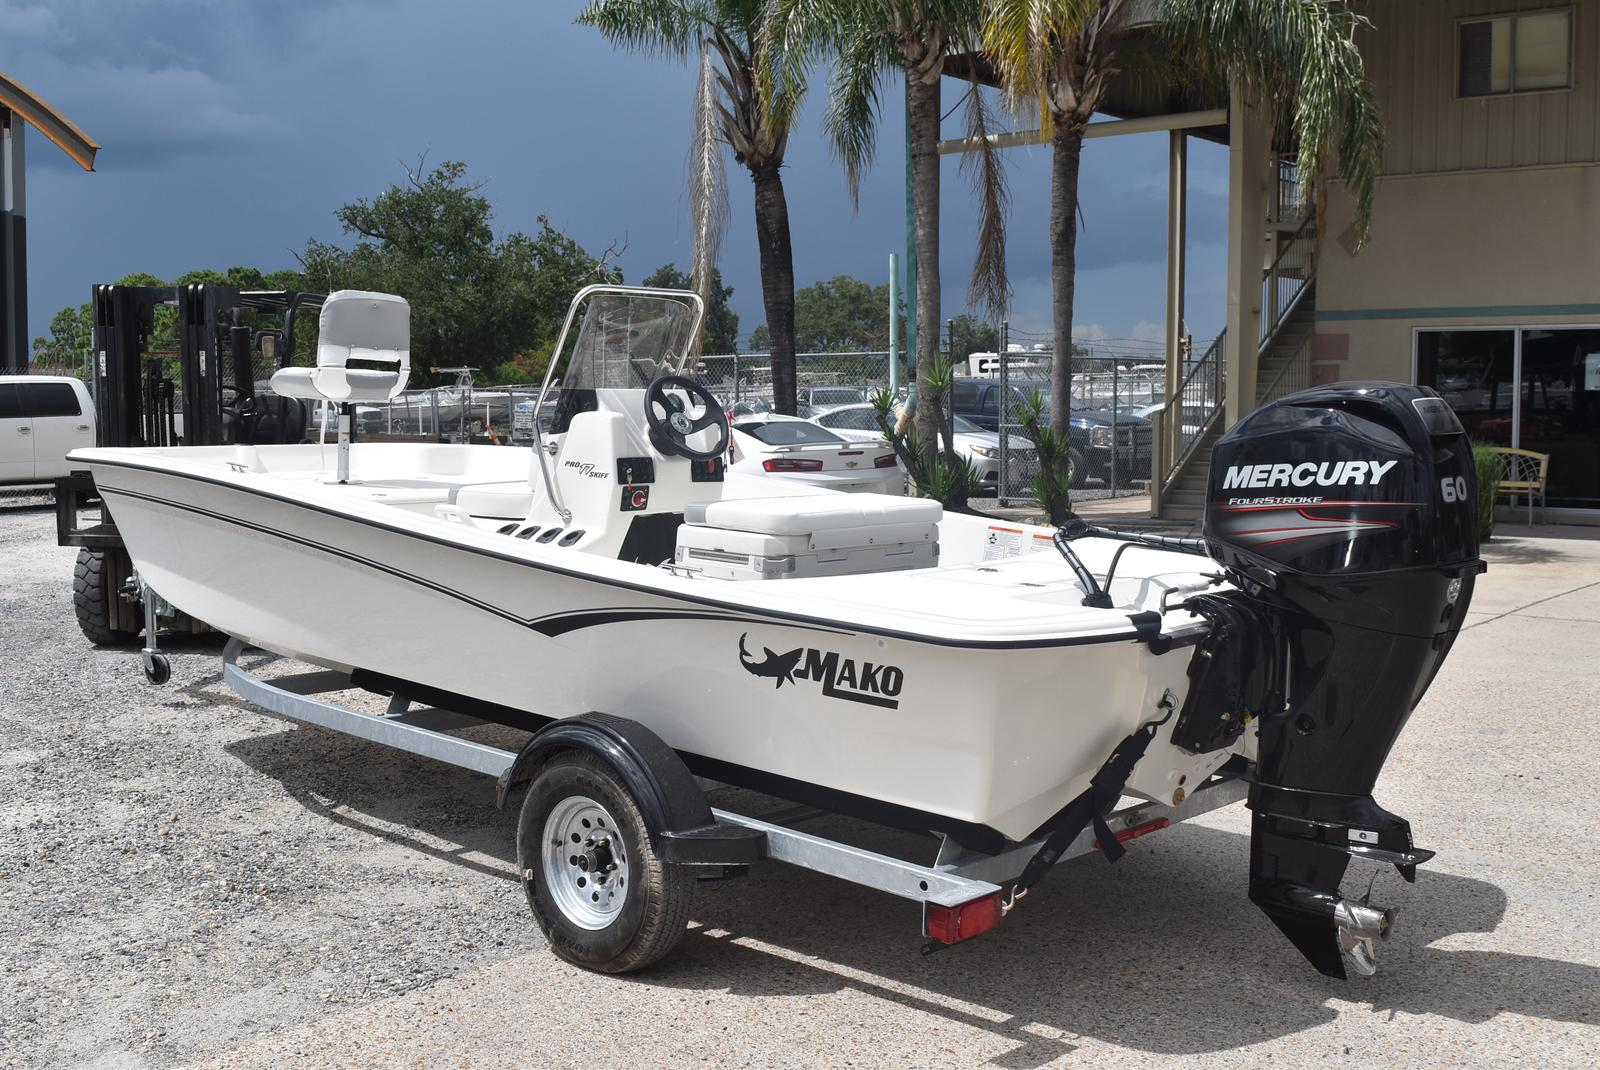 2020 Mako boat for sale, model of the boat is Pro Skiff 17, 75 ELPT & Image # 215 of 702